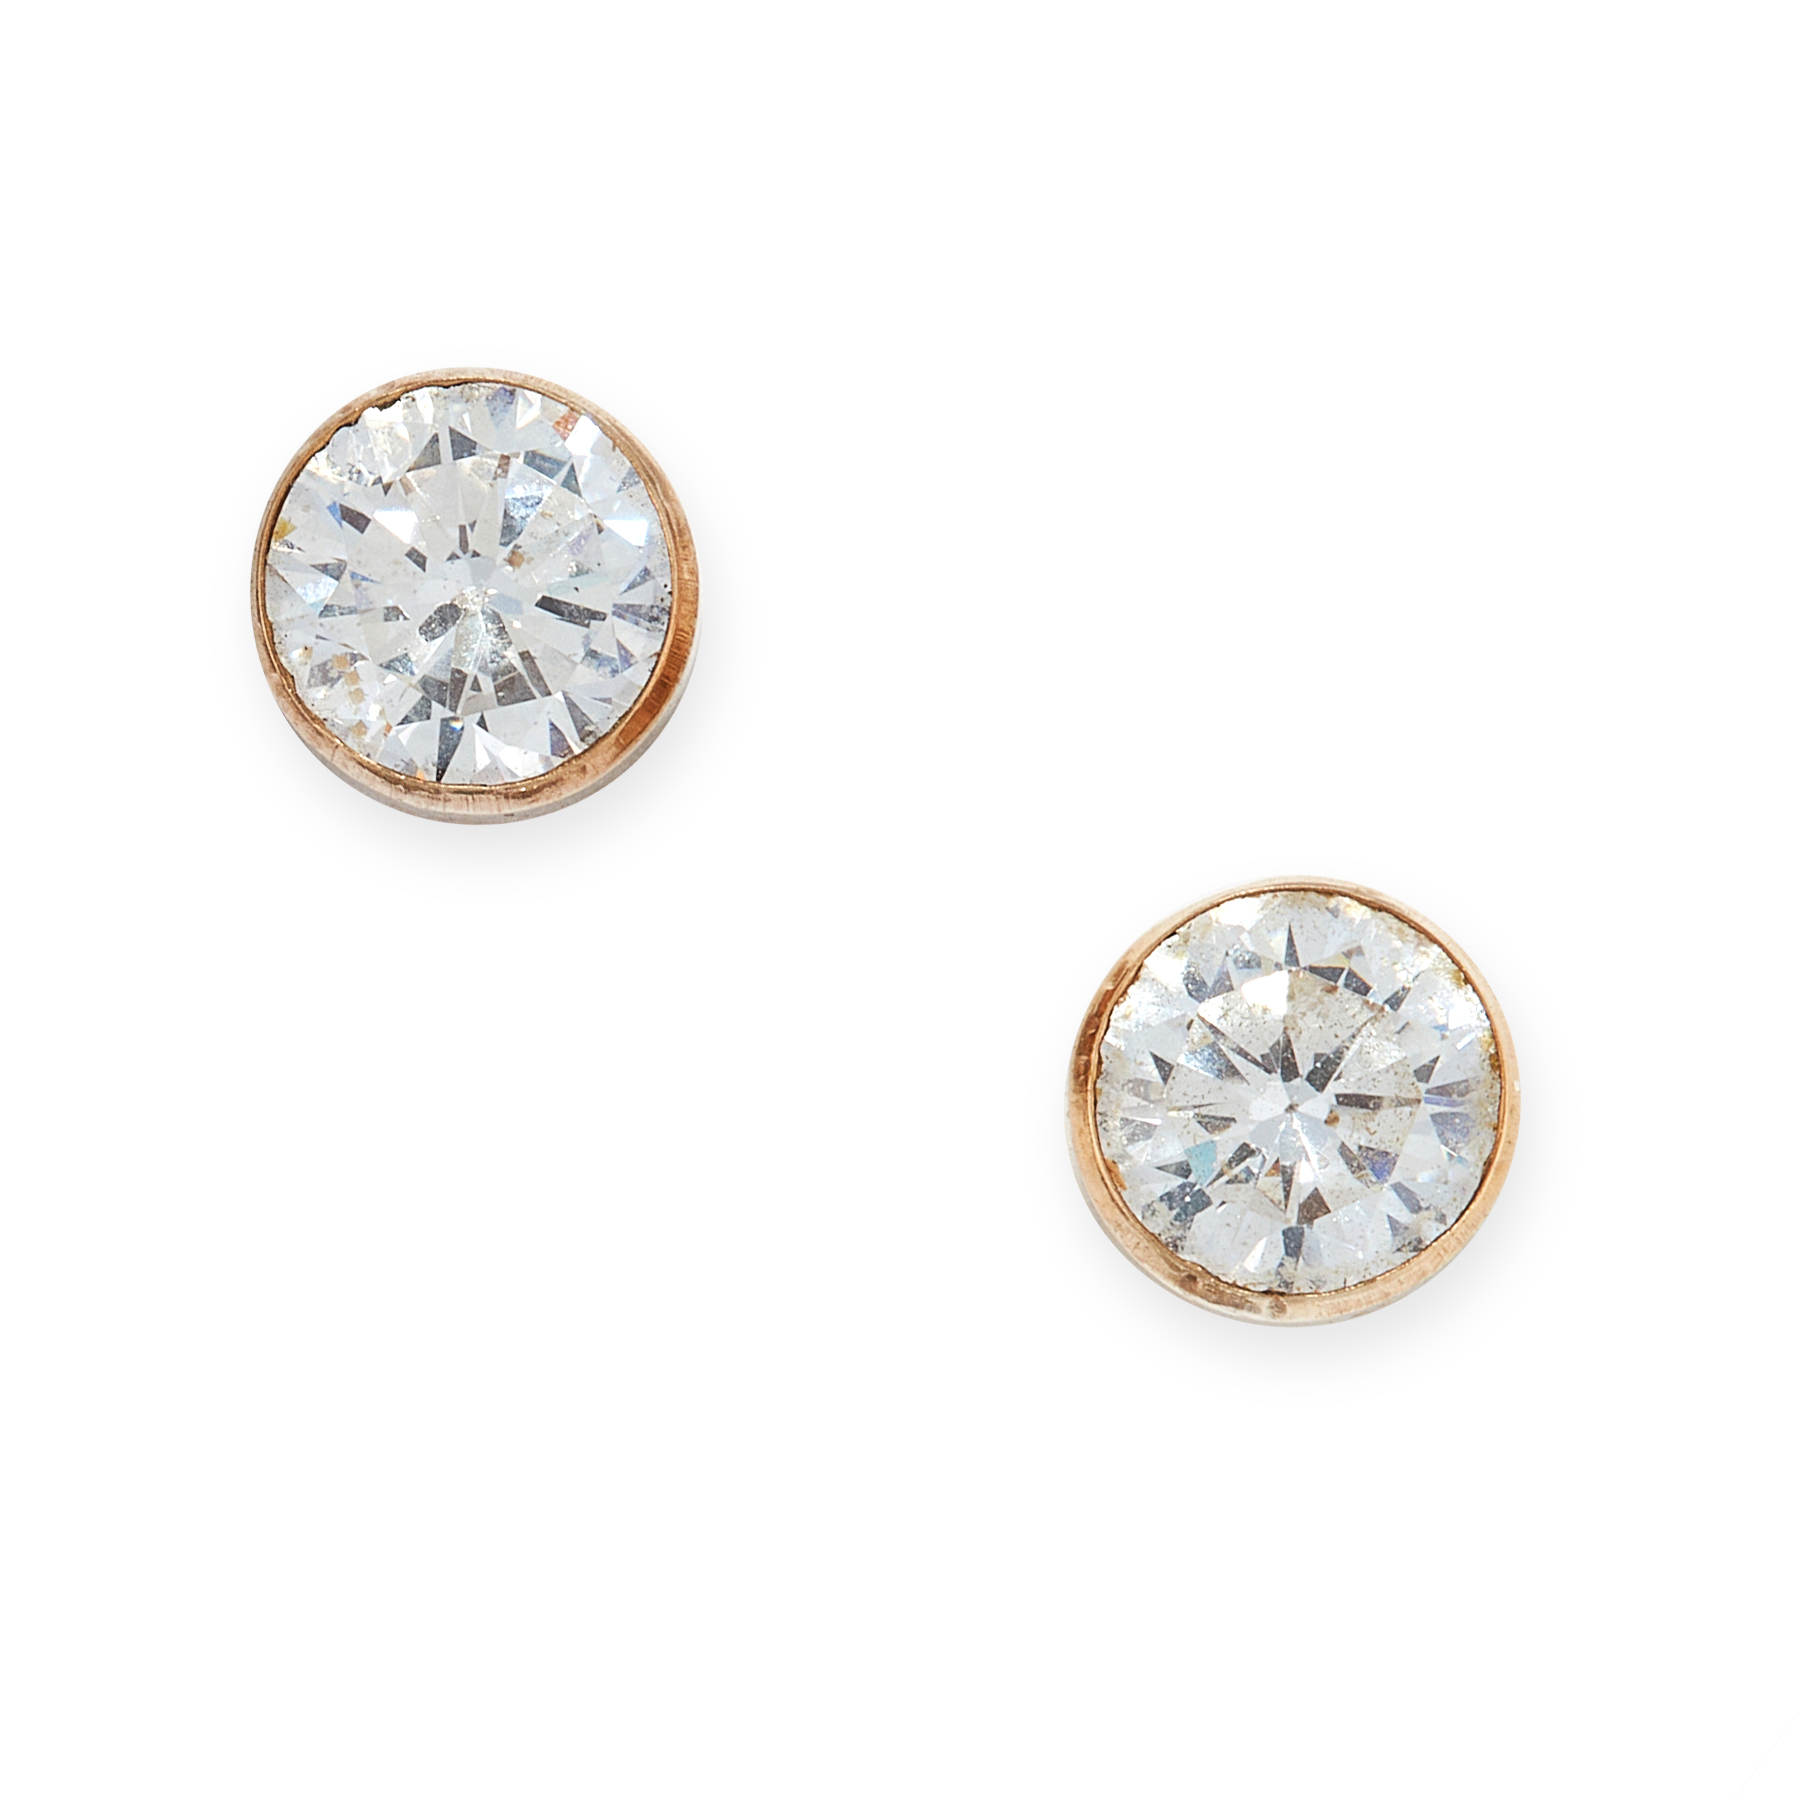 A PAIR OF GEMSET STUD EARRINGS each set with a round cut white gemstone, unmarked, 0.7cm, 1.0g.